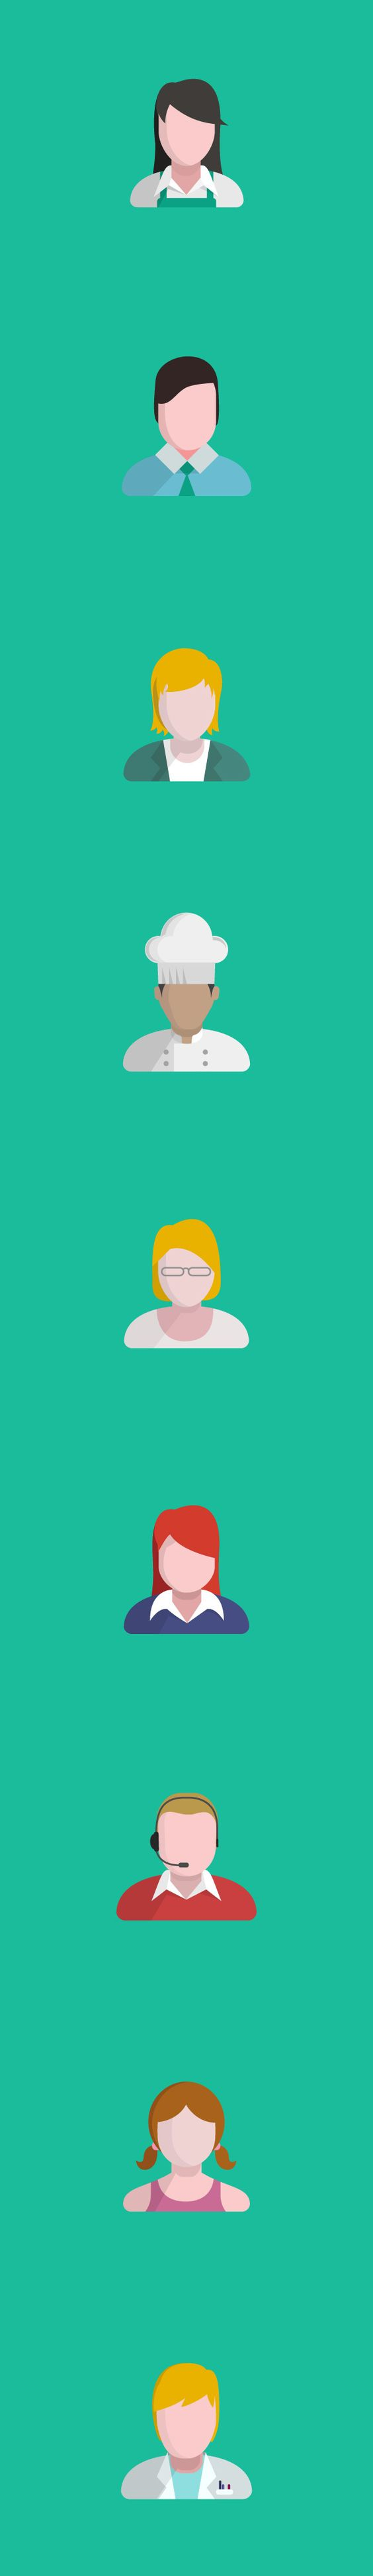 People Flat Icons by Nicolás Paparella, via Behance